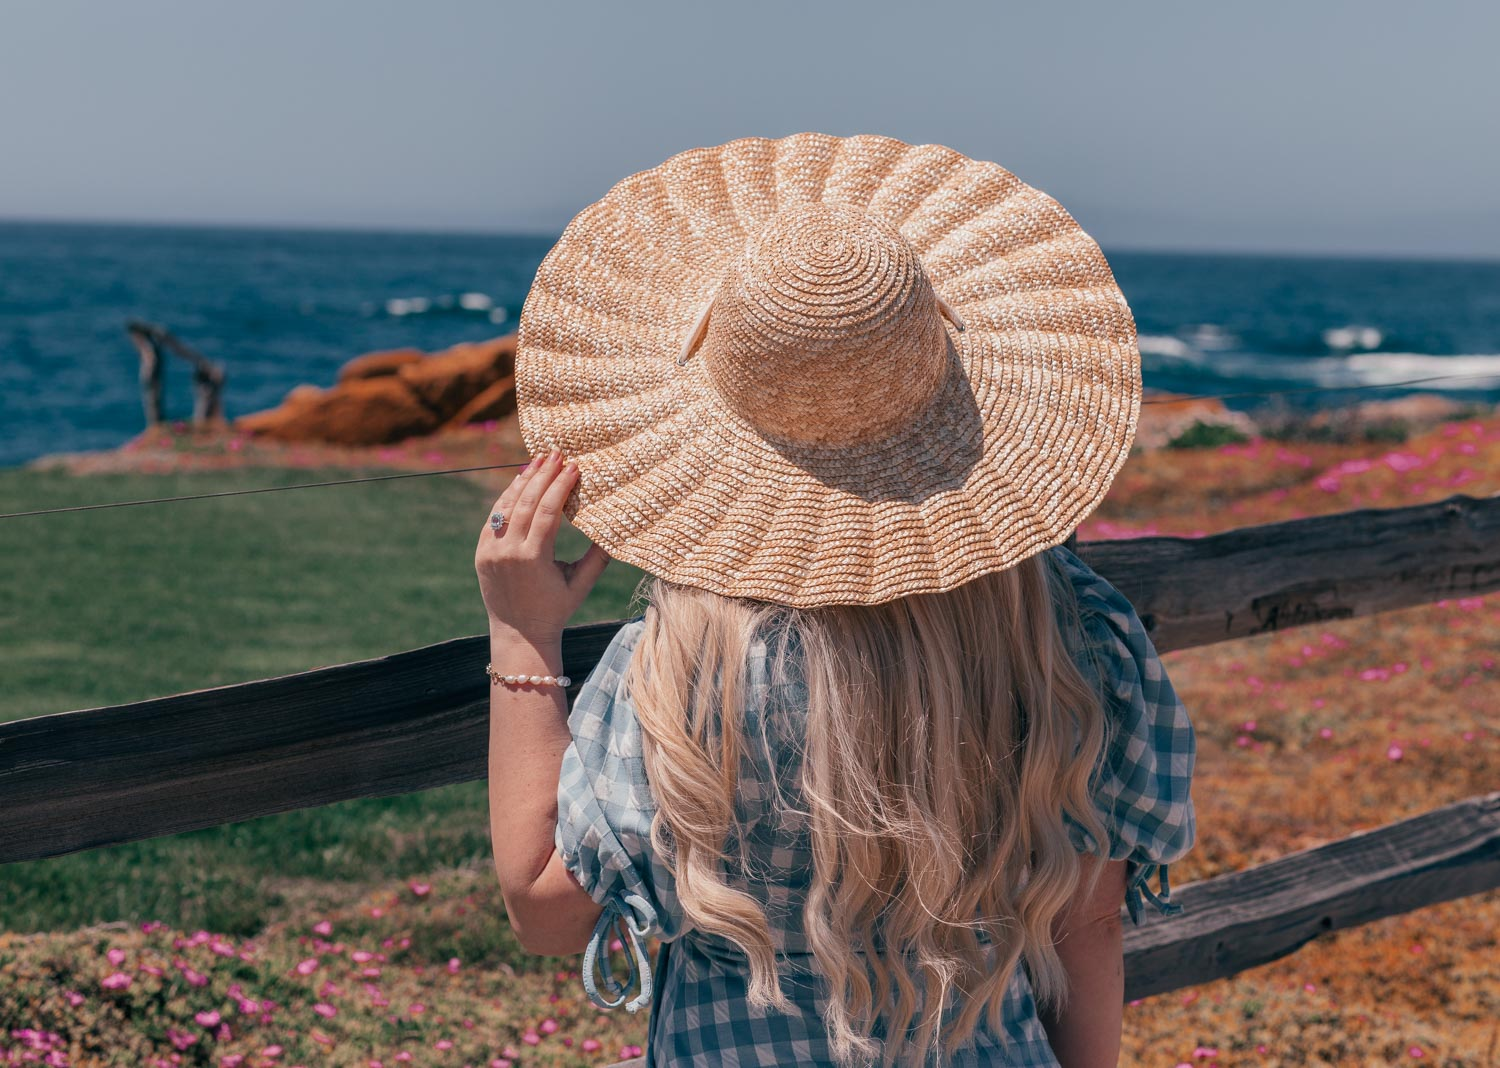 Fashion Blogger Elizabeth Hugen of Lizzie in Lace shares what to do in Carmel by-the-sea and includes her favorite feminine travel outfit ideas like this River Island blue Gingham Dress and Lack of Color Dolce Scalloped Hat